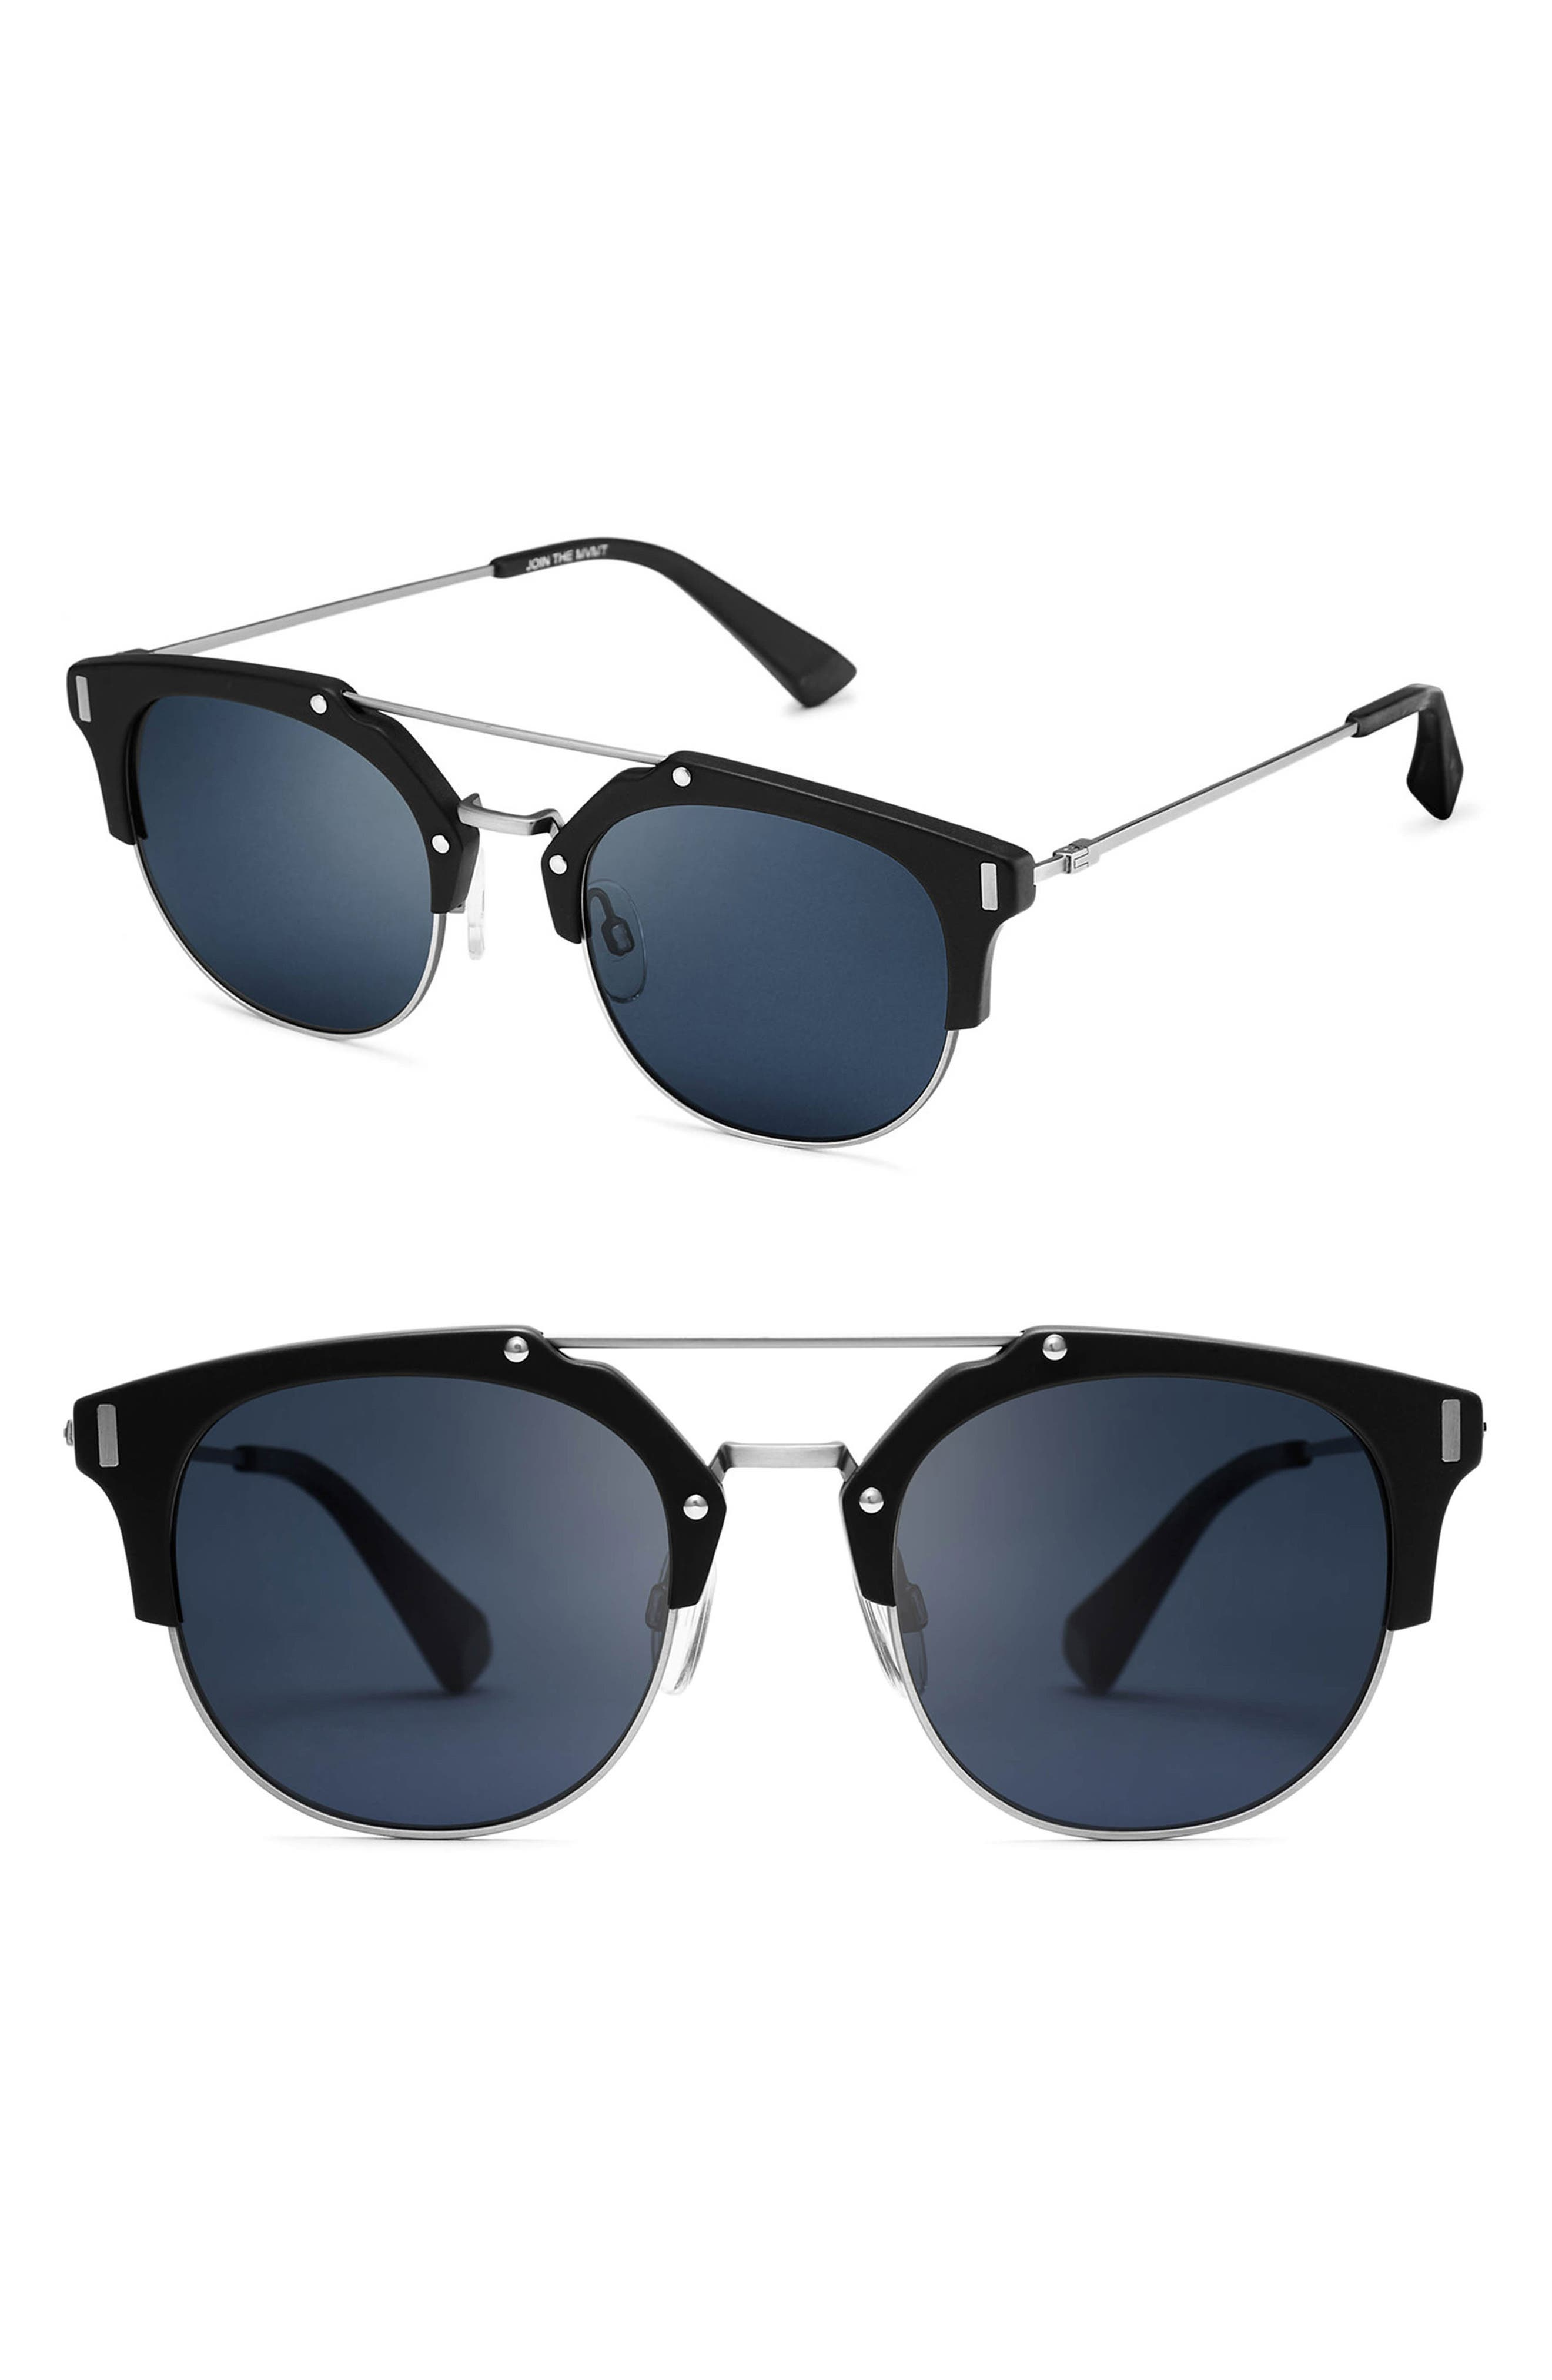 Weekend 51mm Polarized Sunglasses,                         Main,                         color, Matte Black